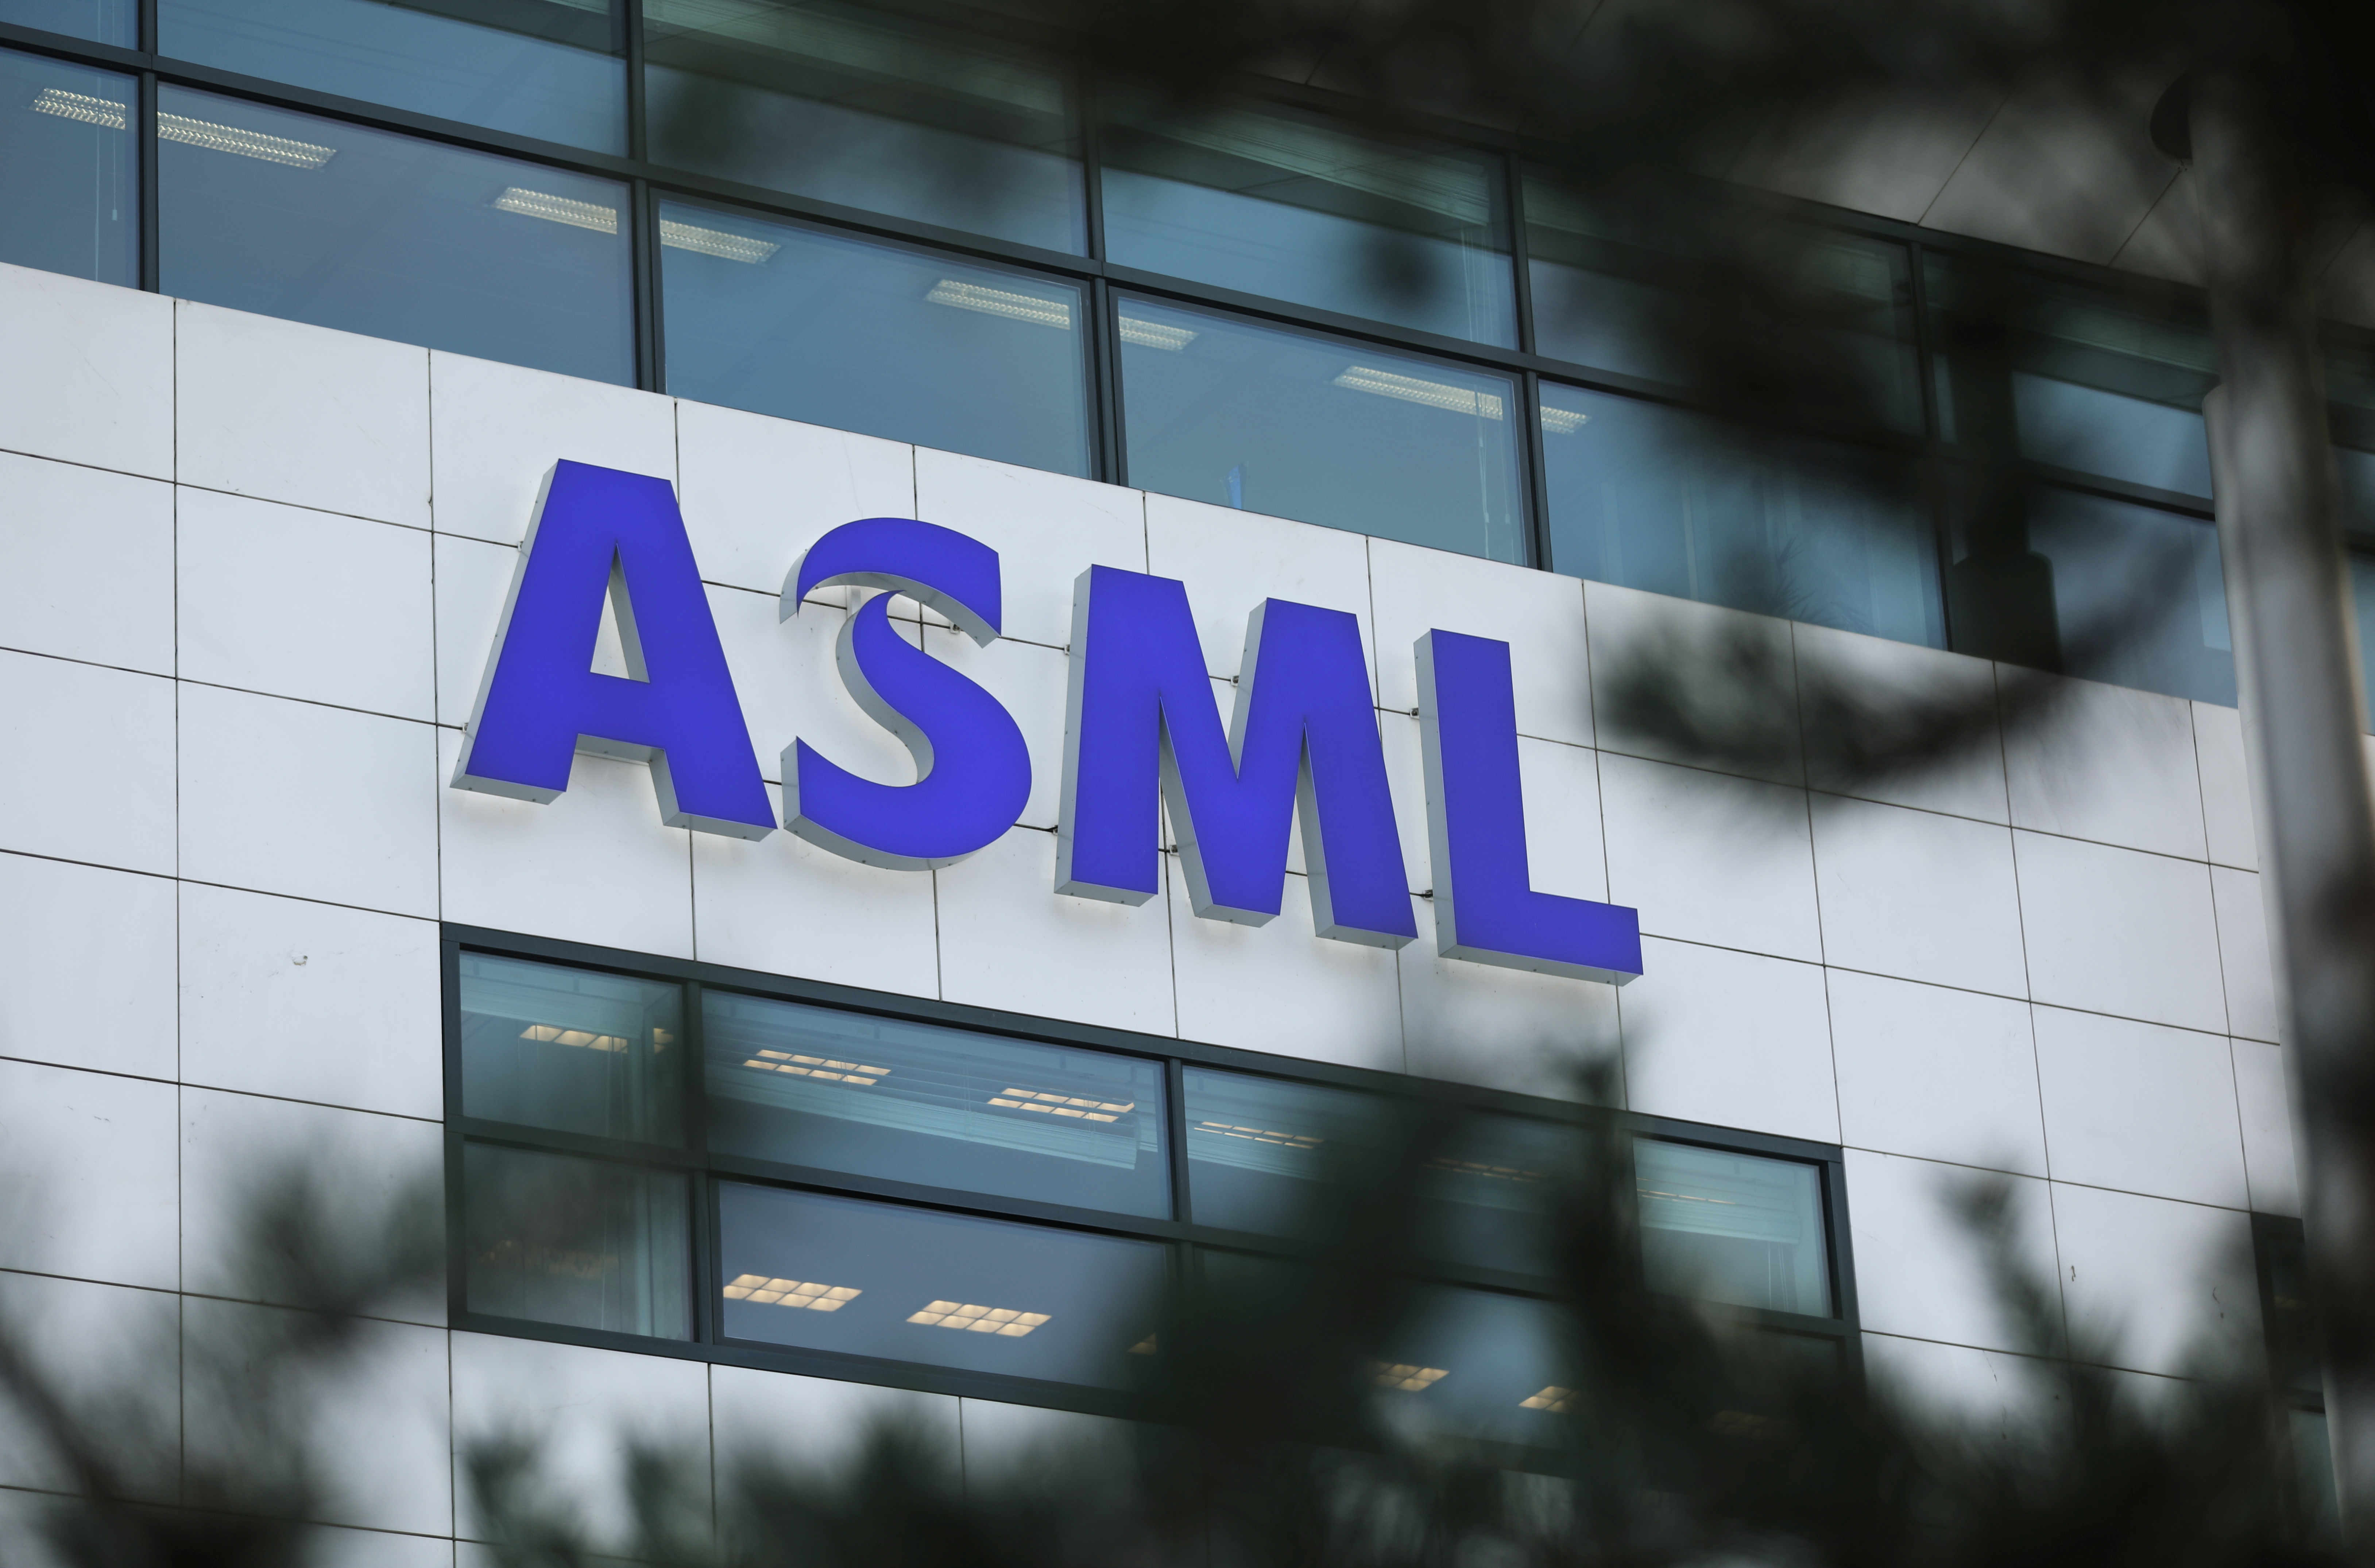 ASML Holding logo is seen at company's headquarters in Eindhoven, Netherlands, January 23, 2019. REUTERS/Eva Plevier